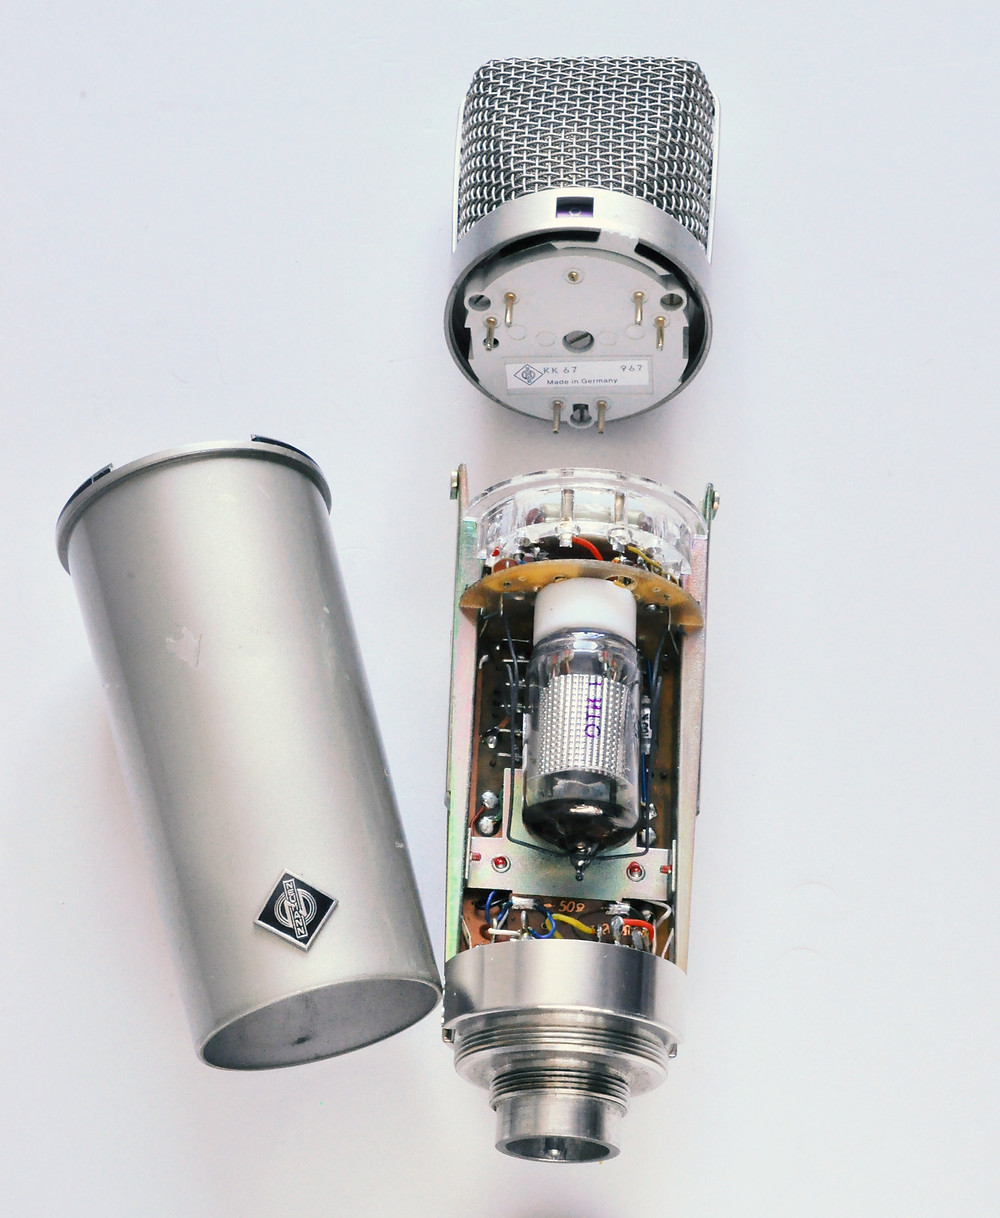 Partially dismantled Neumann U67